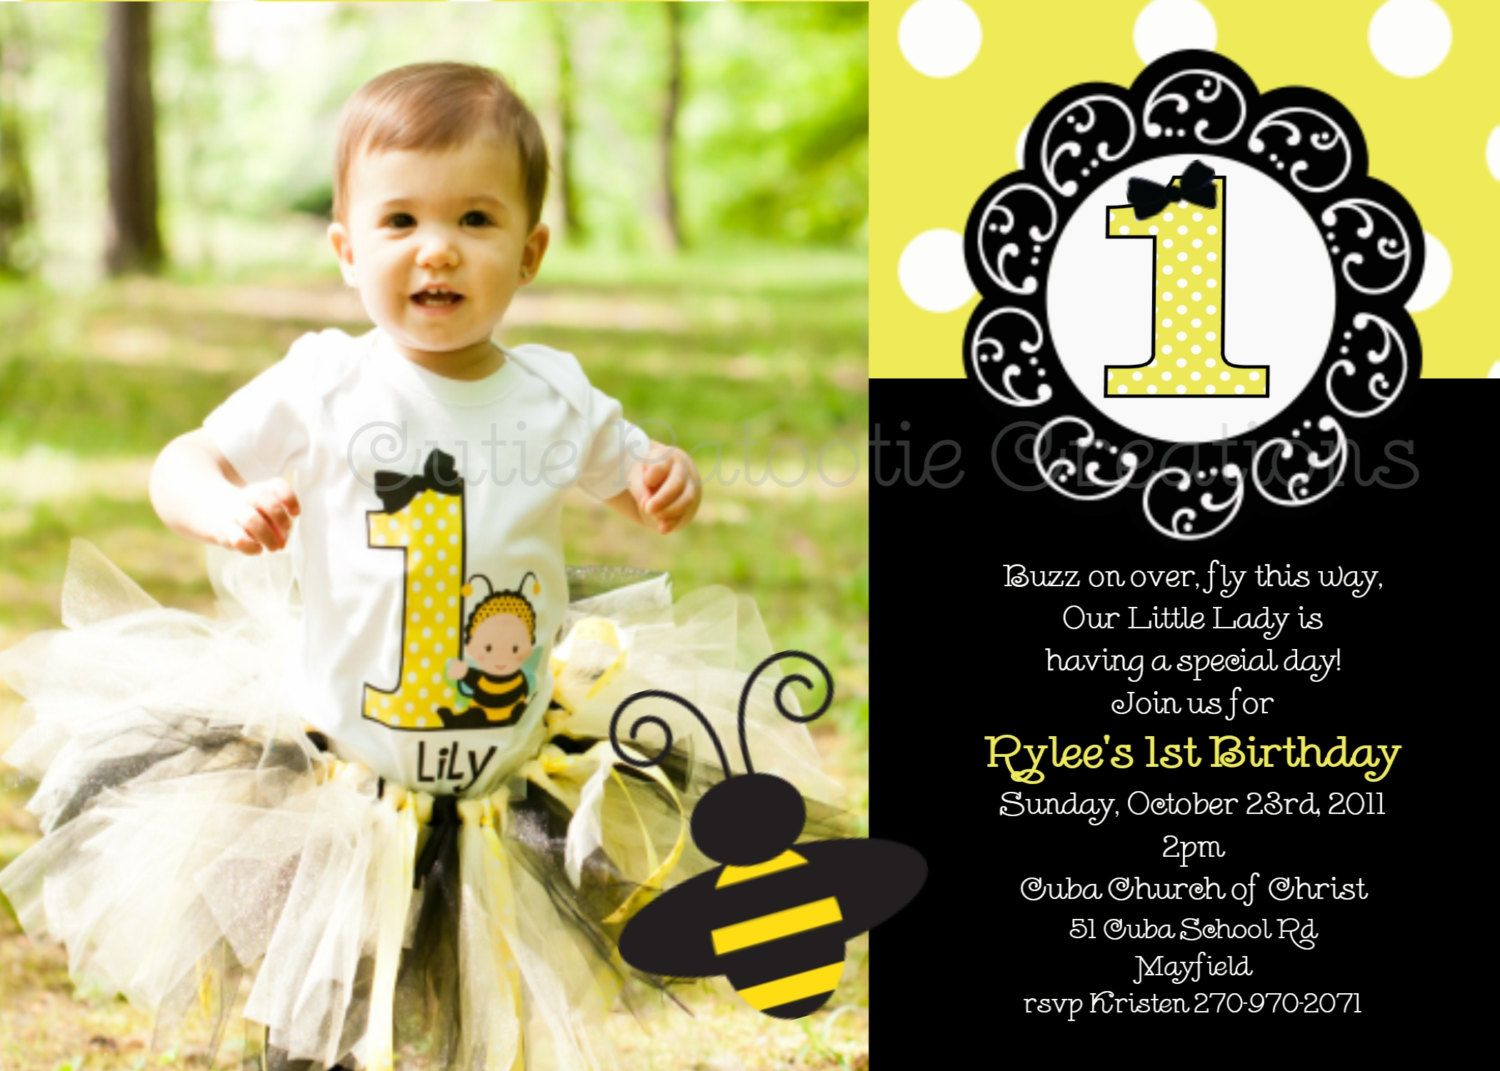 Bumble Bee Birthday Party Invitations Invitation Invites Printable Digital Photo